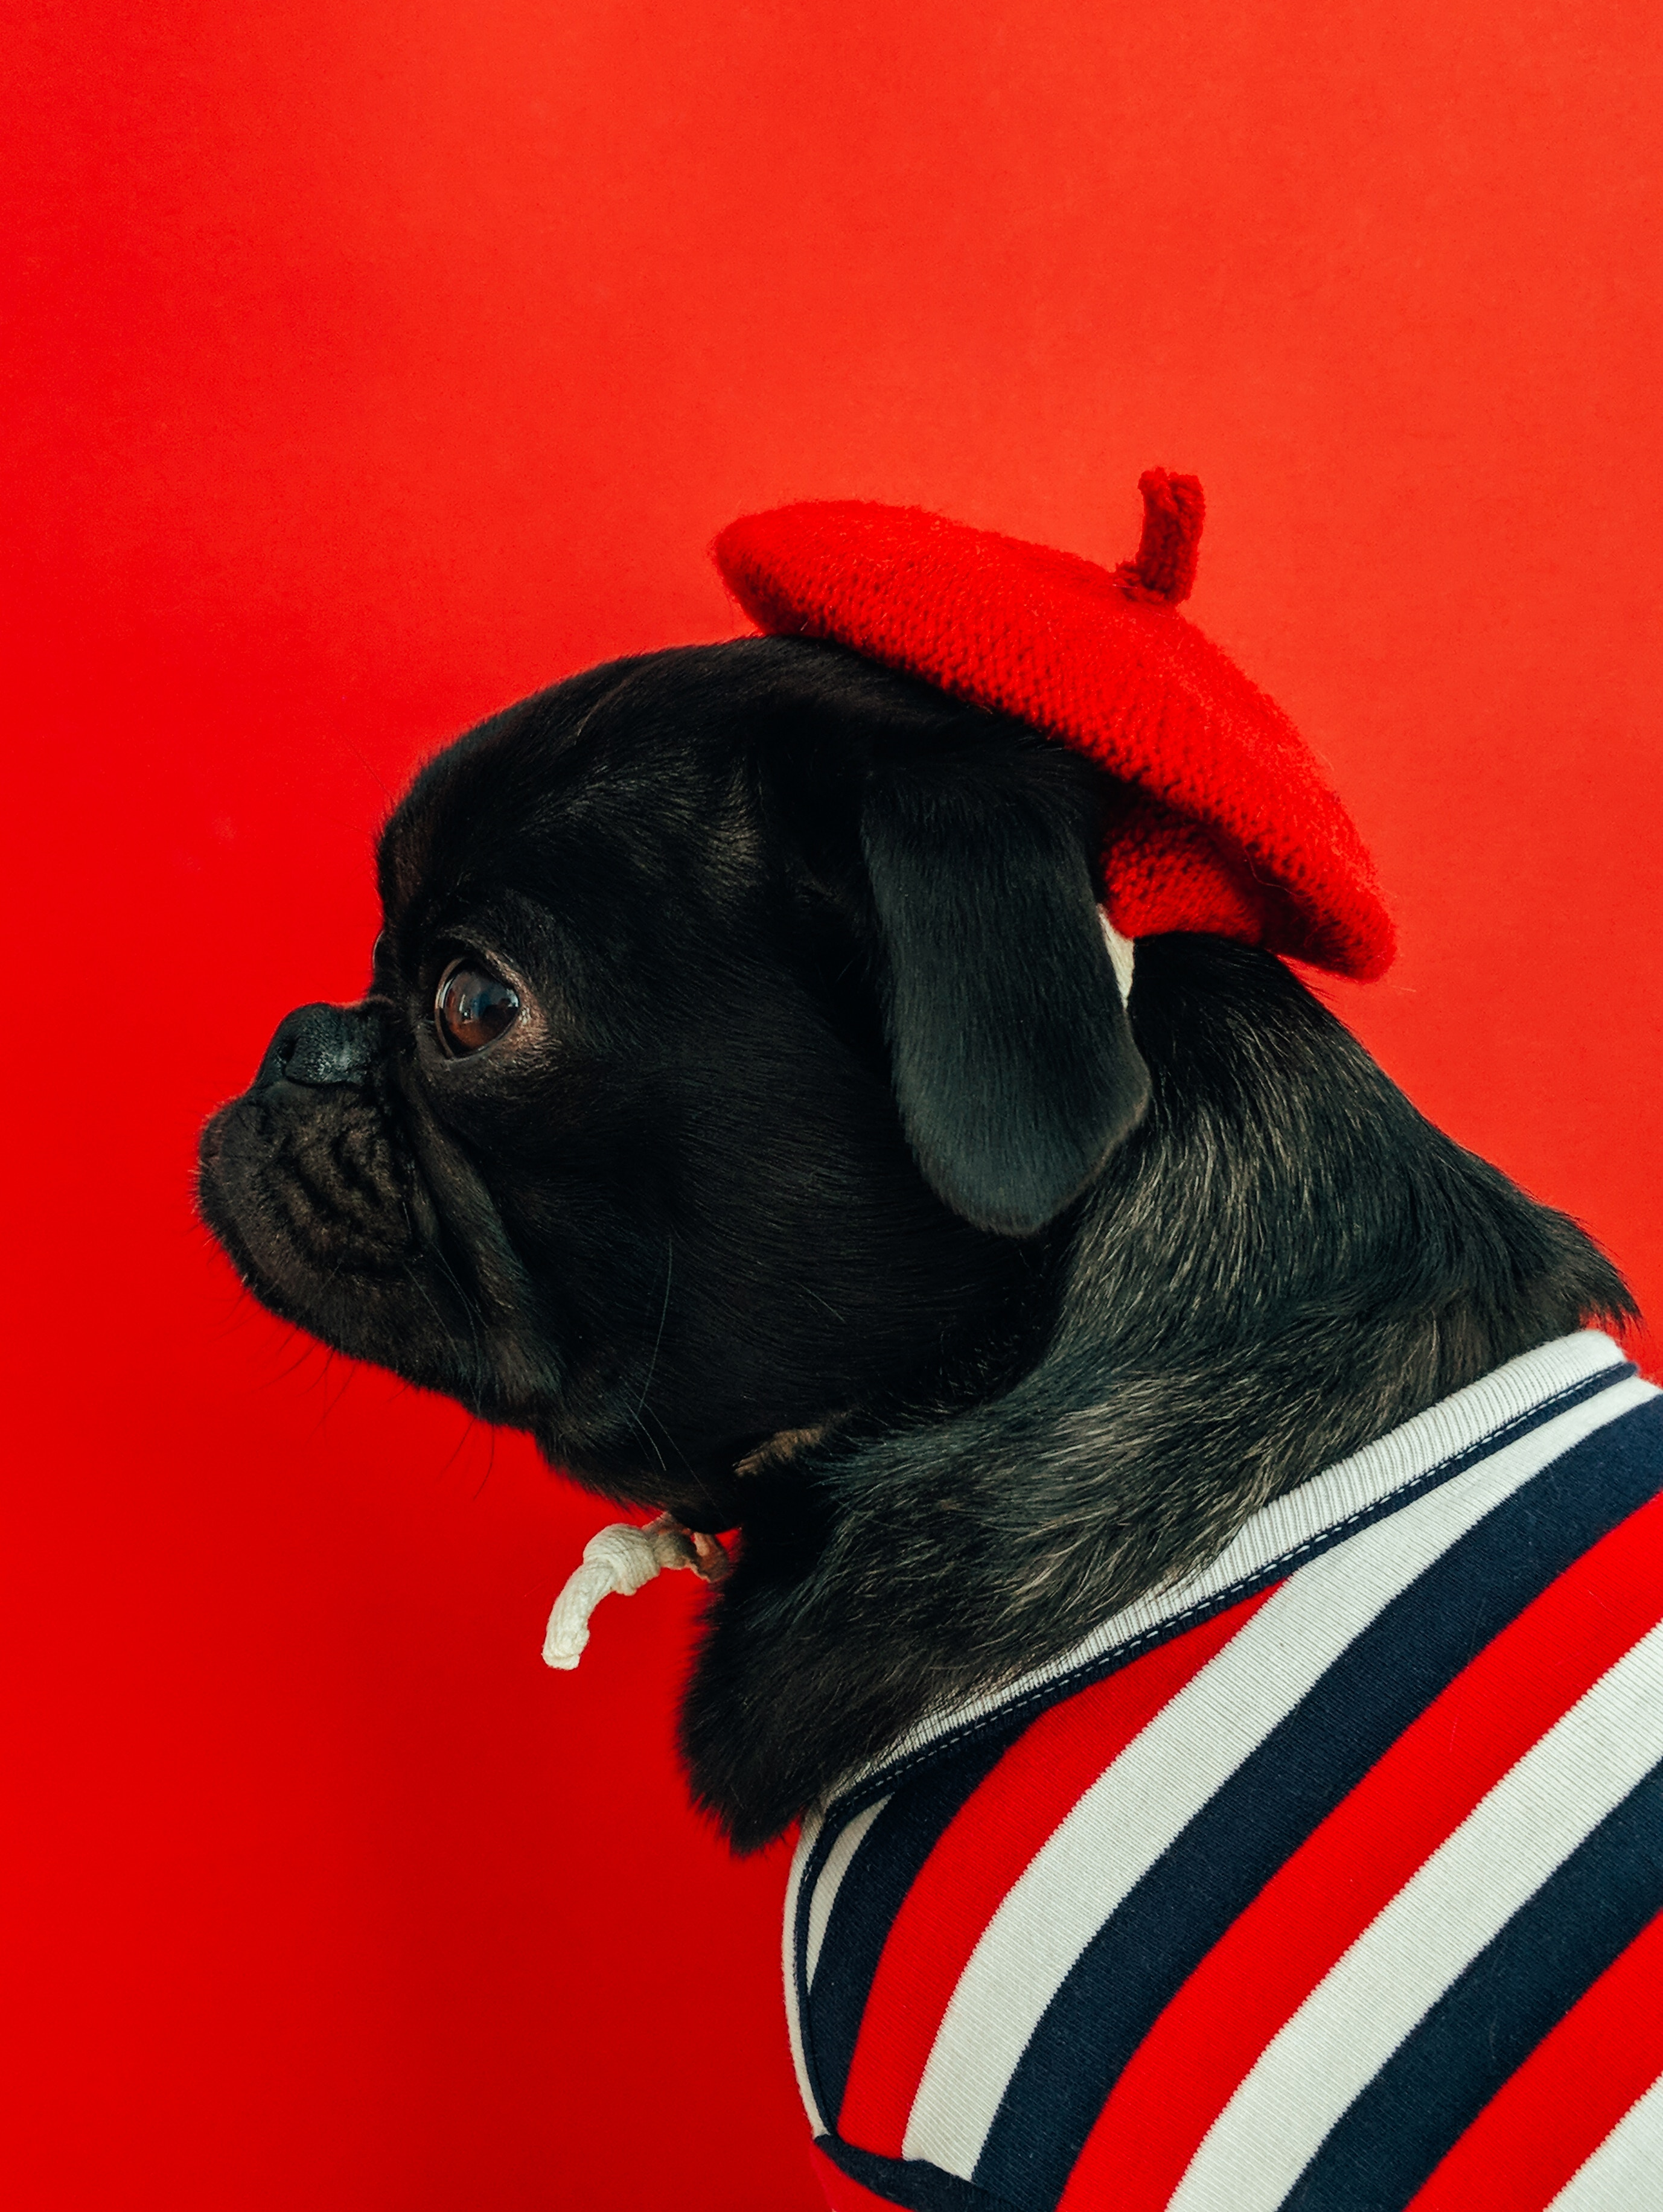 Seven Tips to Keep Your Dog Safe on Fourth of July